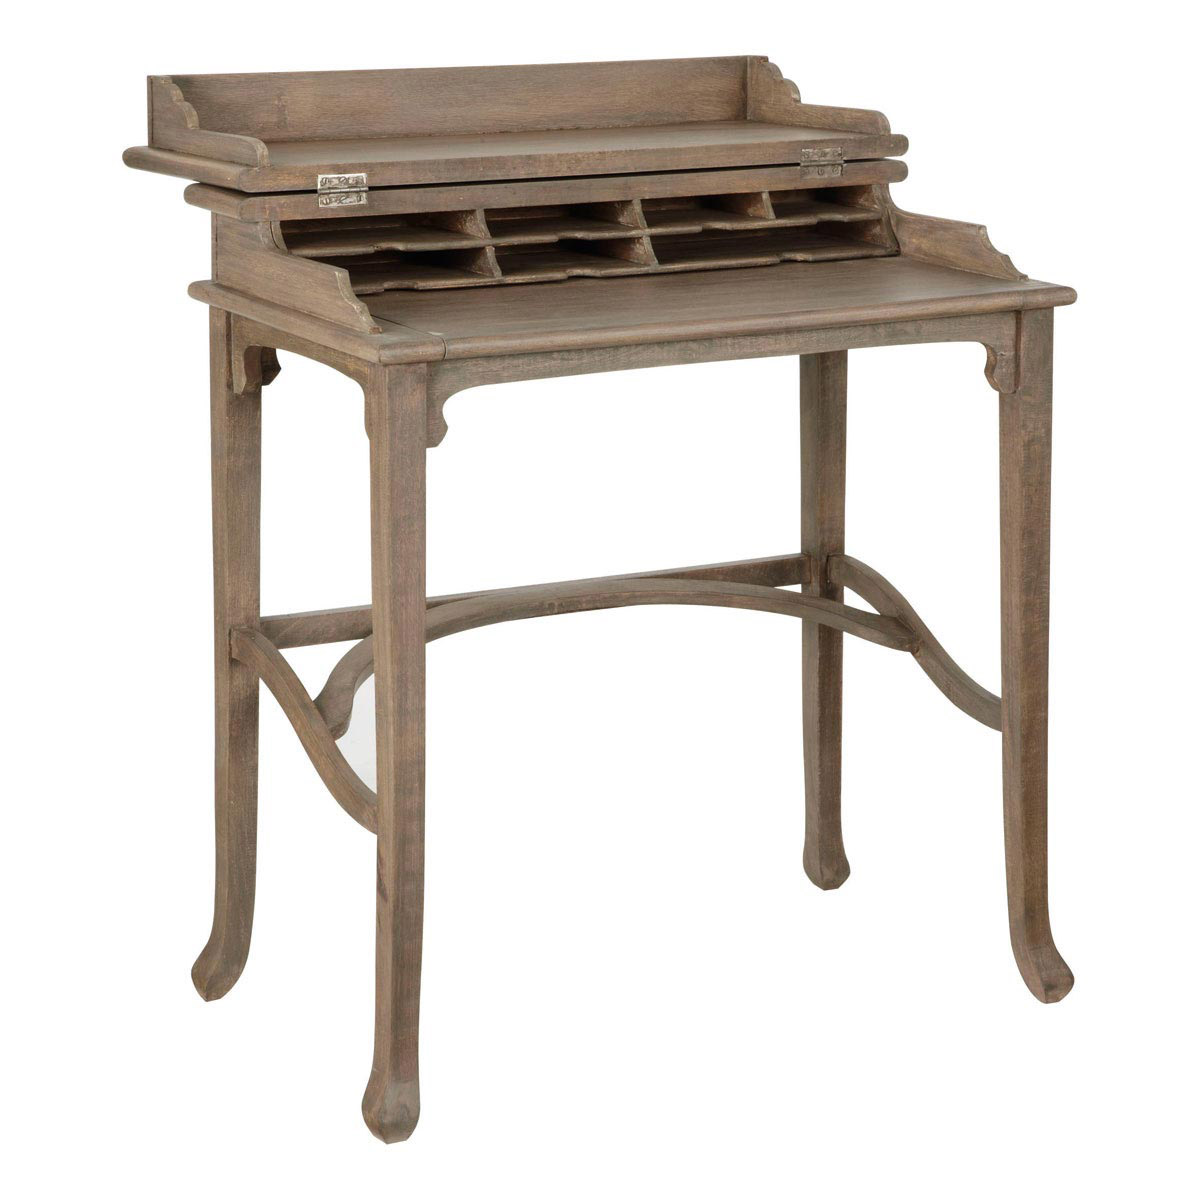 Amazing Small Writing Desk - Handmade Campaign Desk - OKA small writing desk